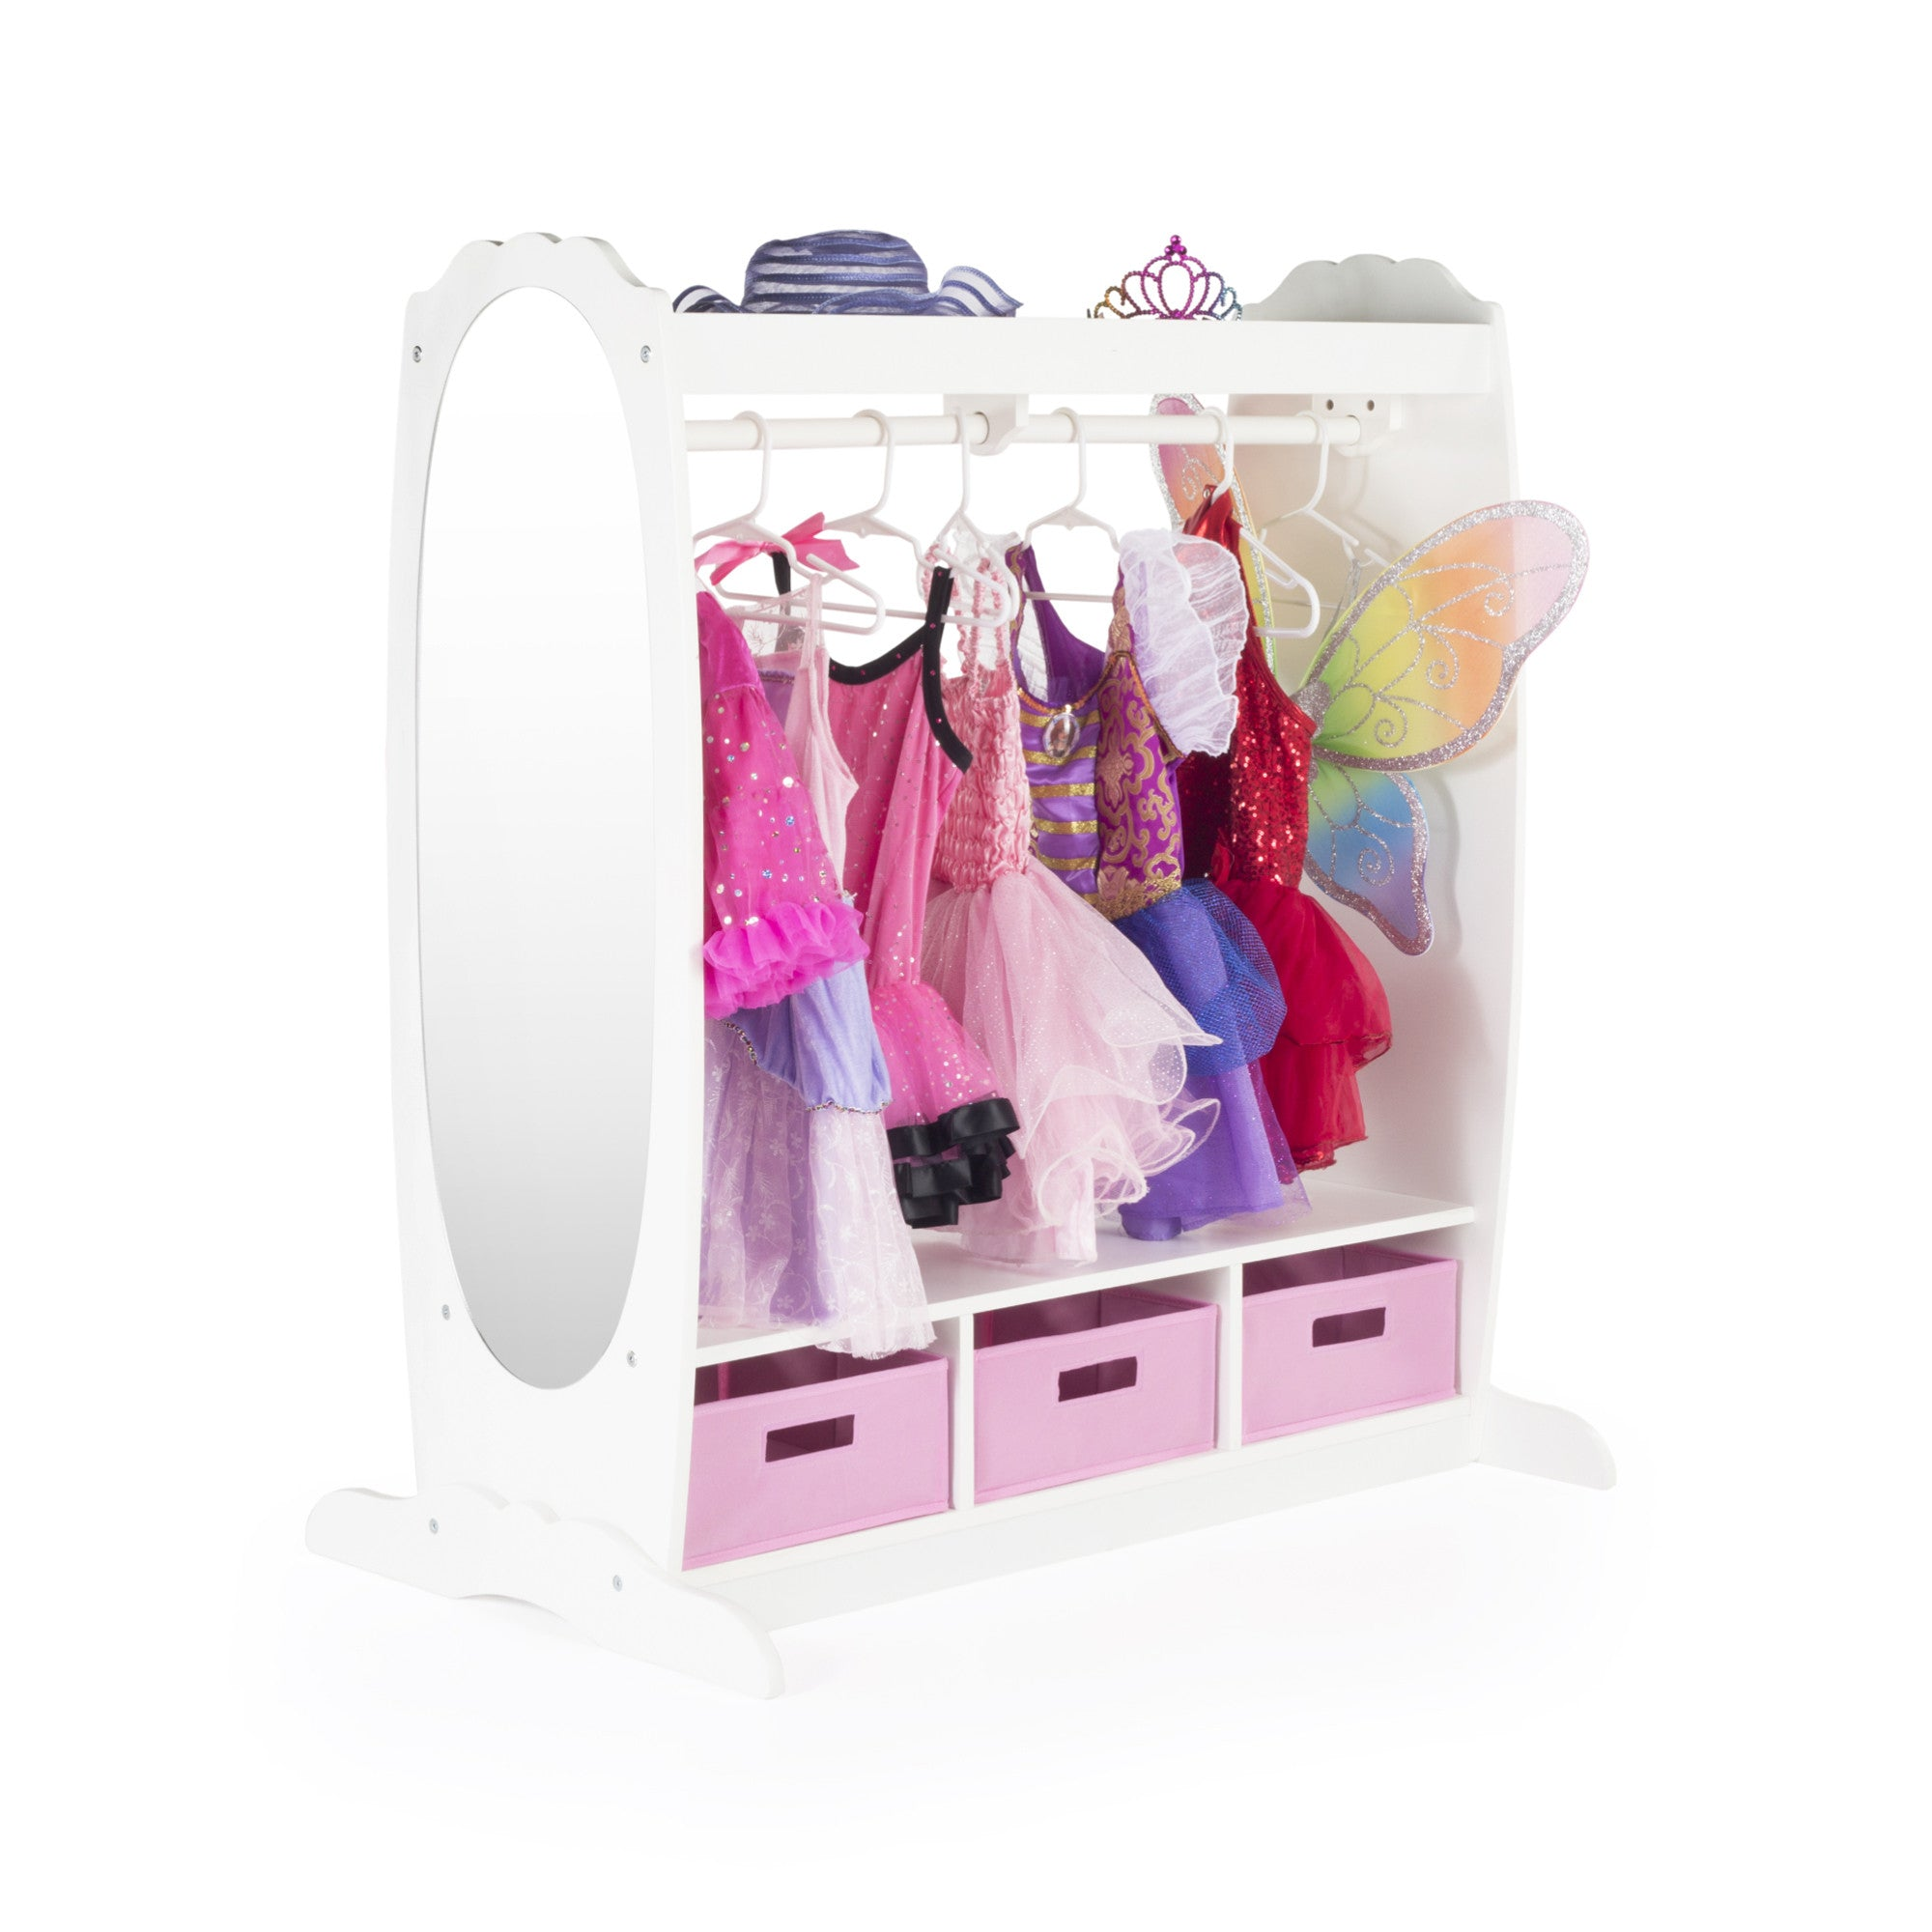 Guidecraft Dress Up Storage – White G98098